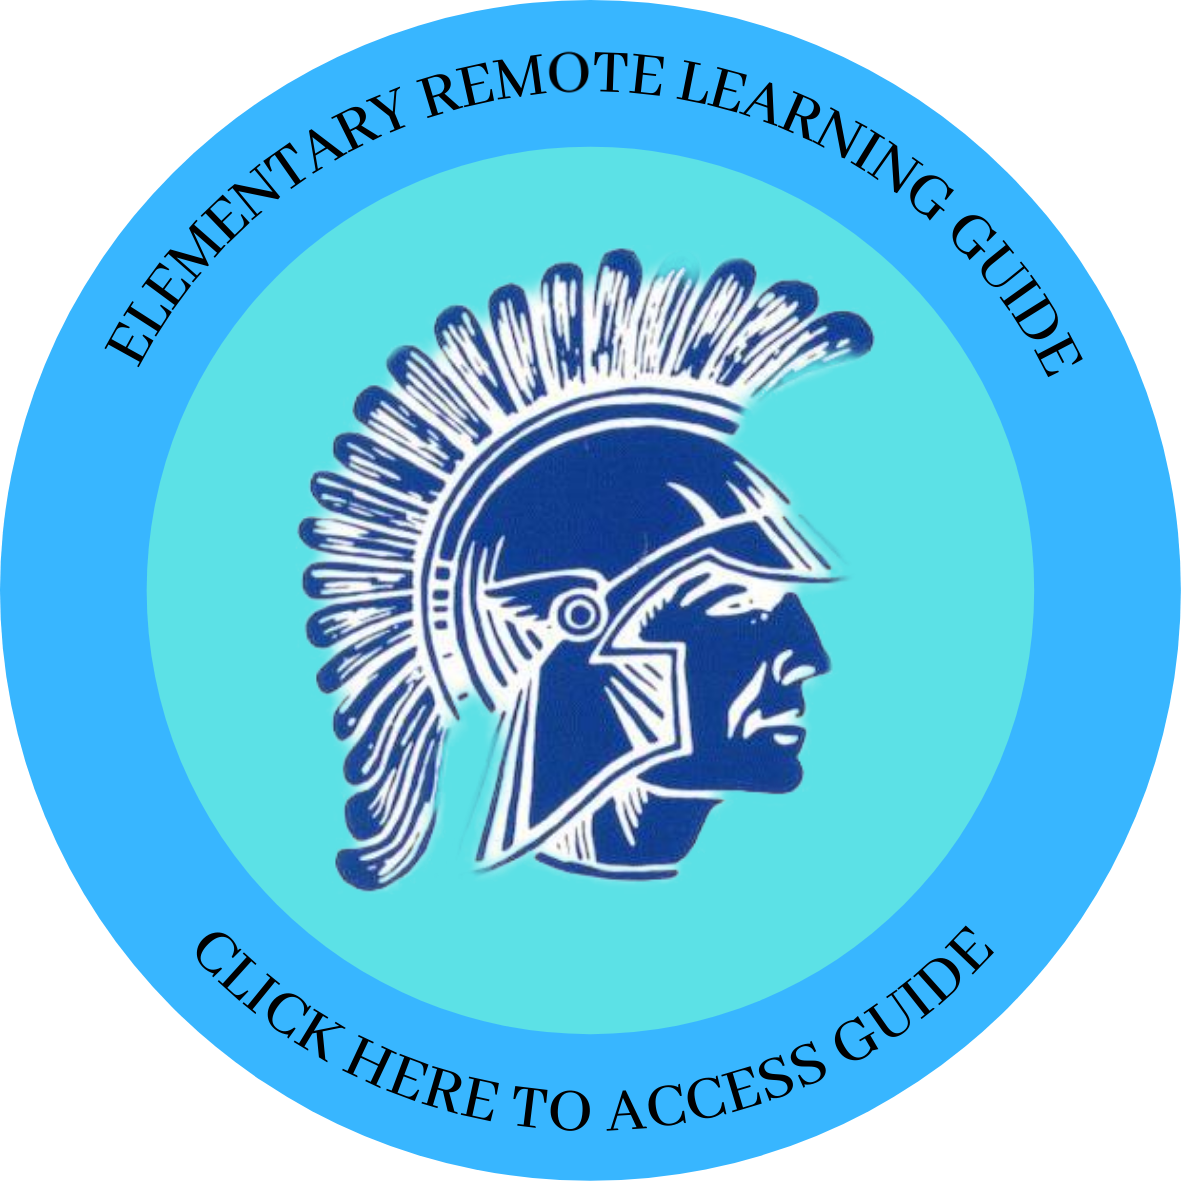 Elementary Remote Learning Guide